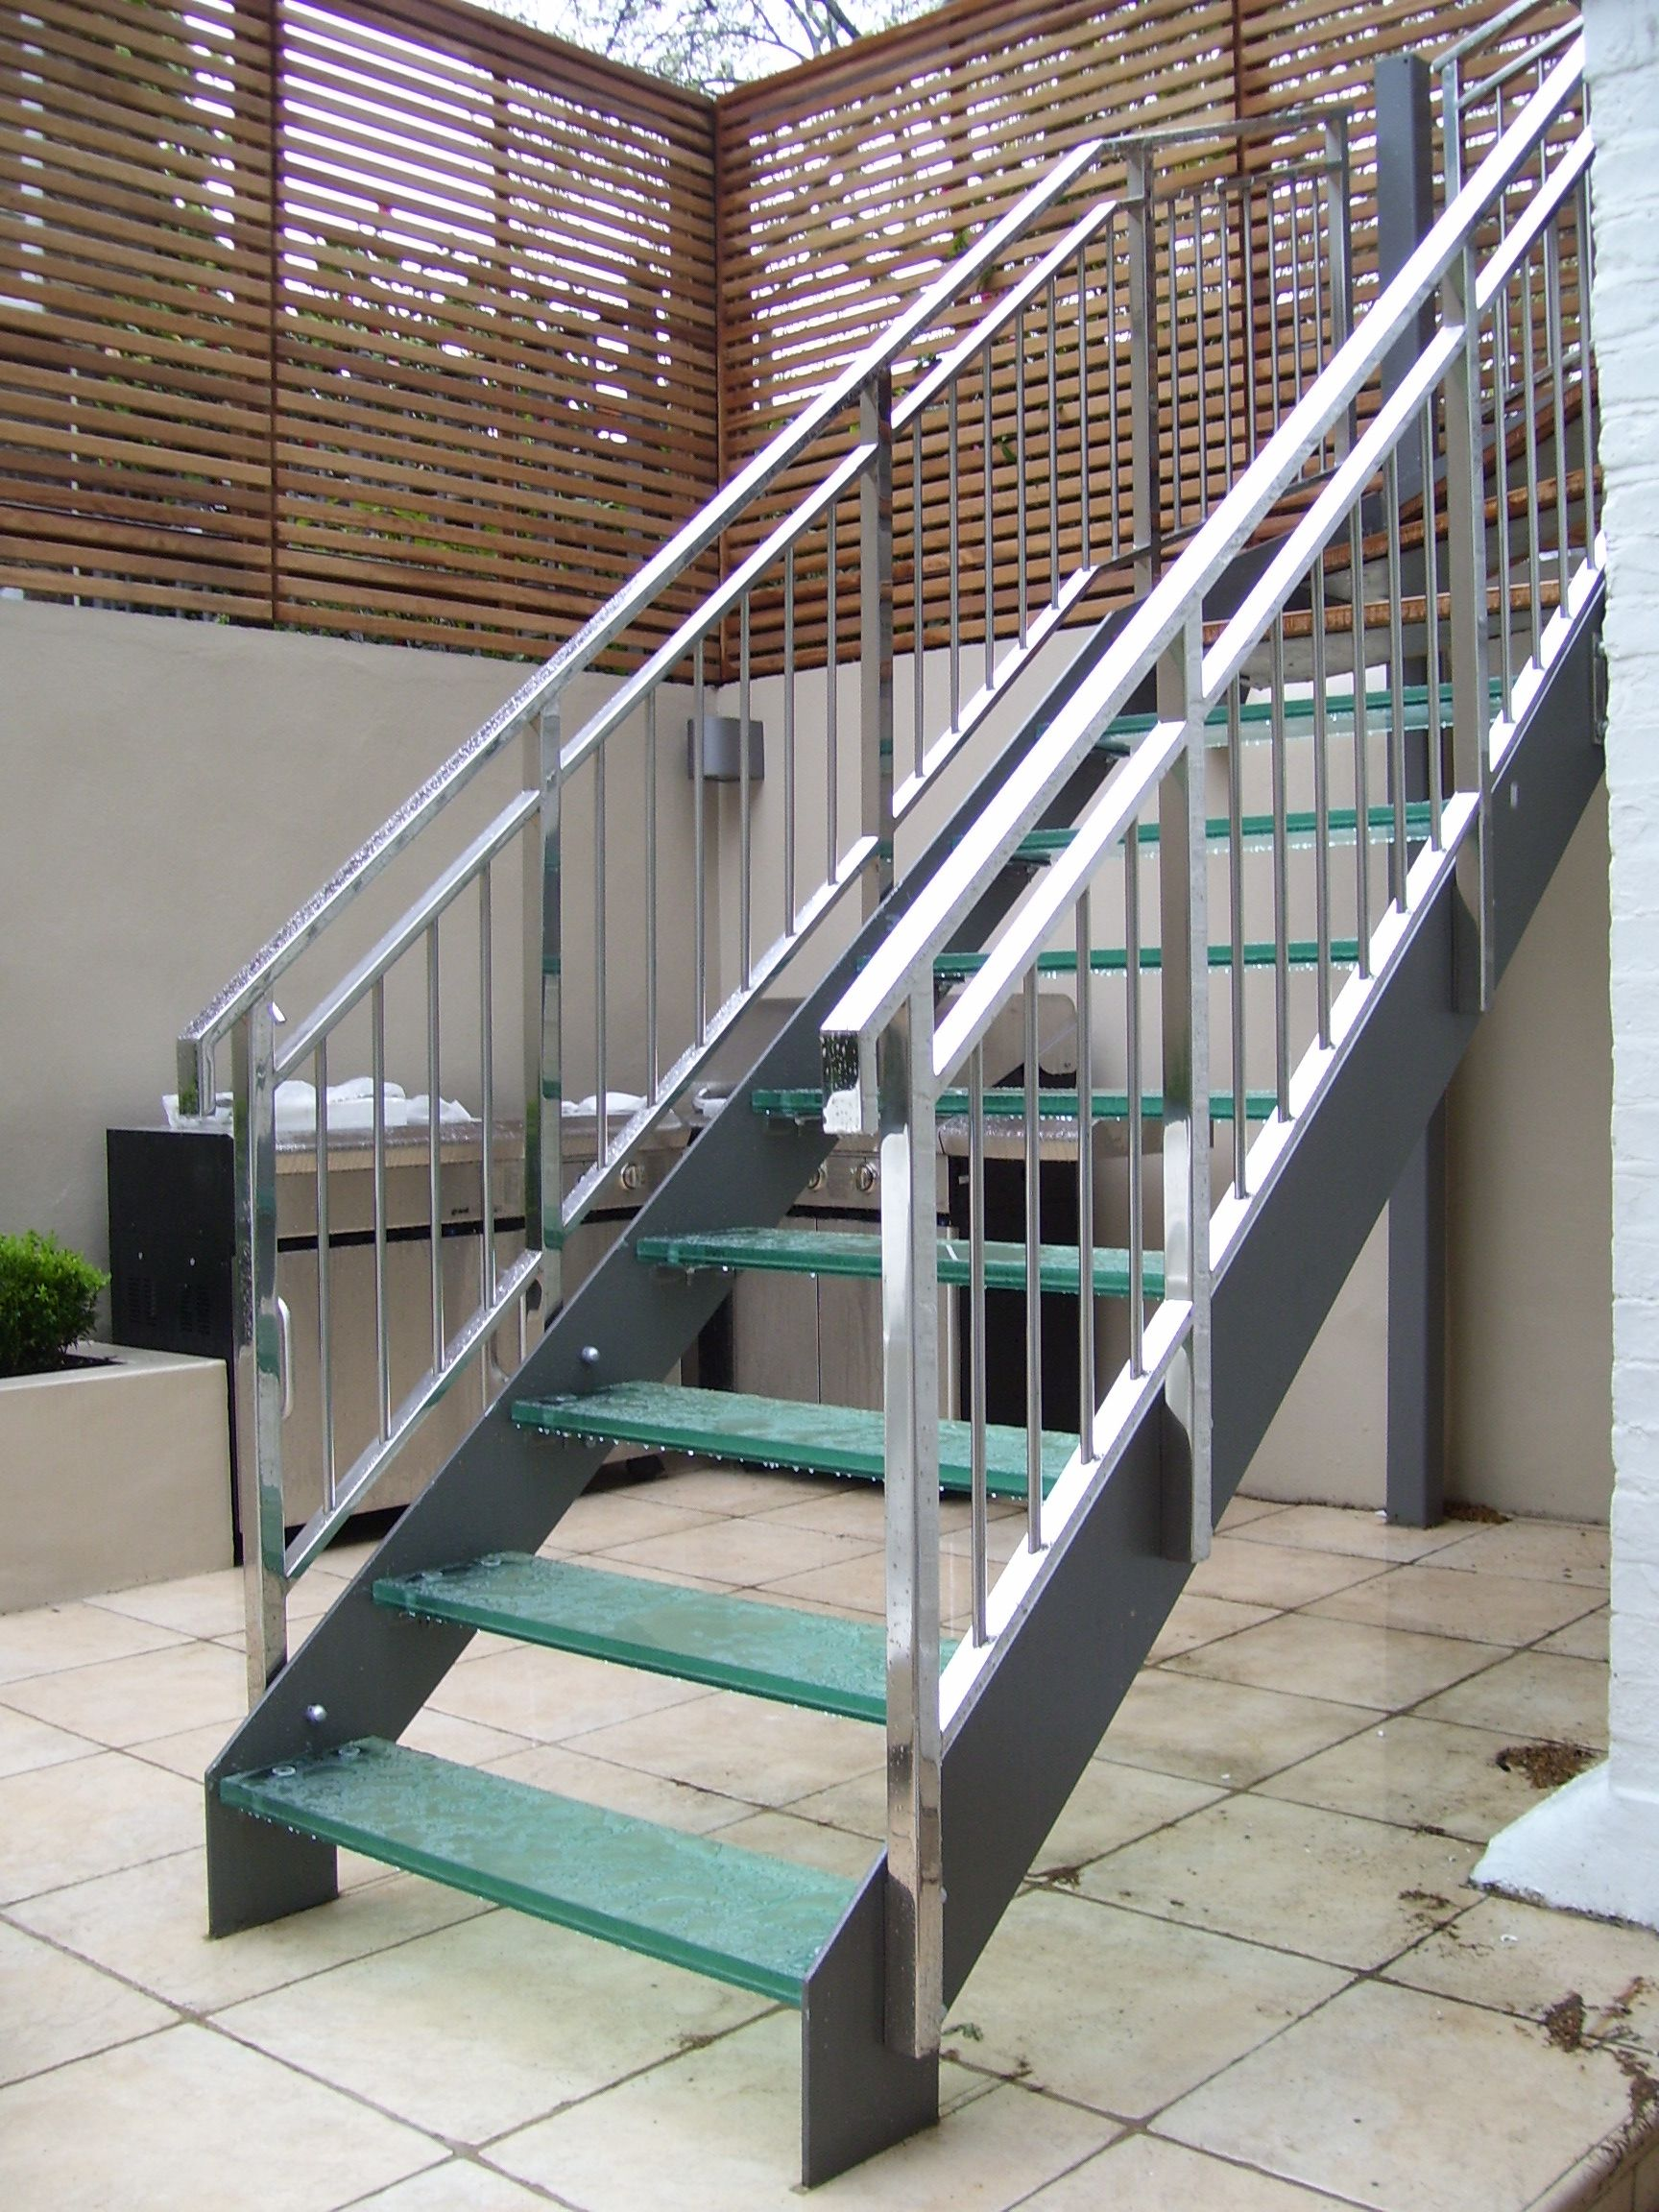 Captivating Prefab Metal Stairs Classic But Most Sought For Your Home Interior Design  With Prefab Metal Stairs Classic But Most Sought Decorating Home Ideas    Modern ...